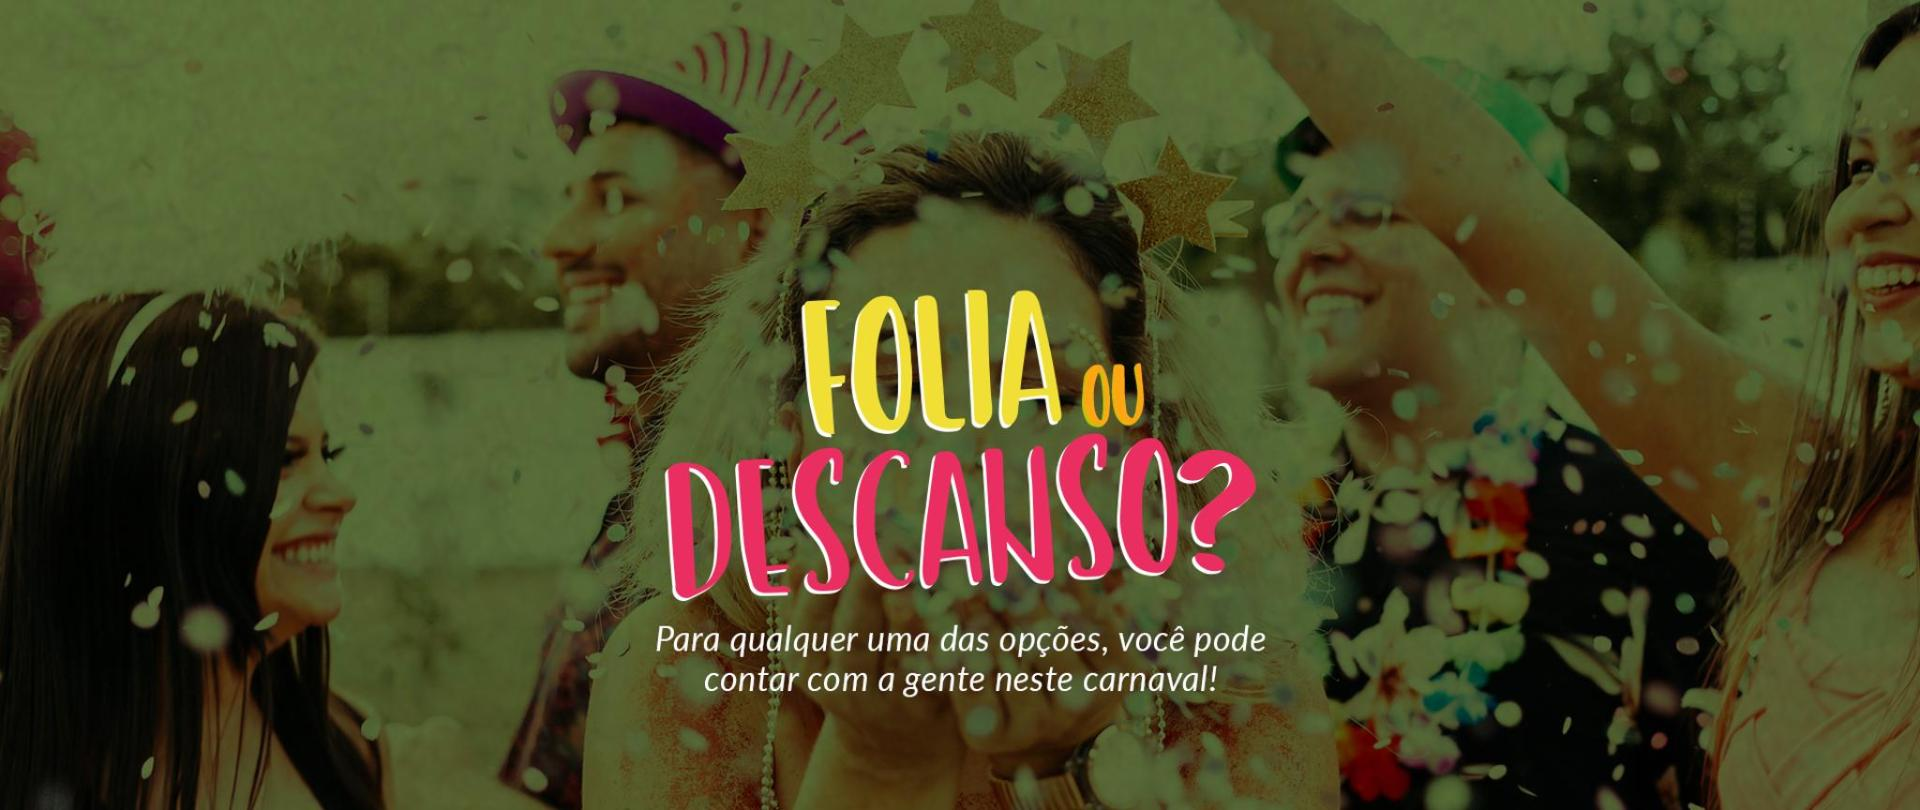 slide site_carnaval 2020_pousada do quilombo.png